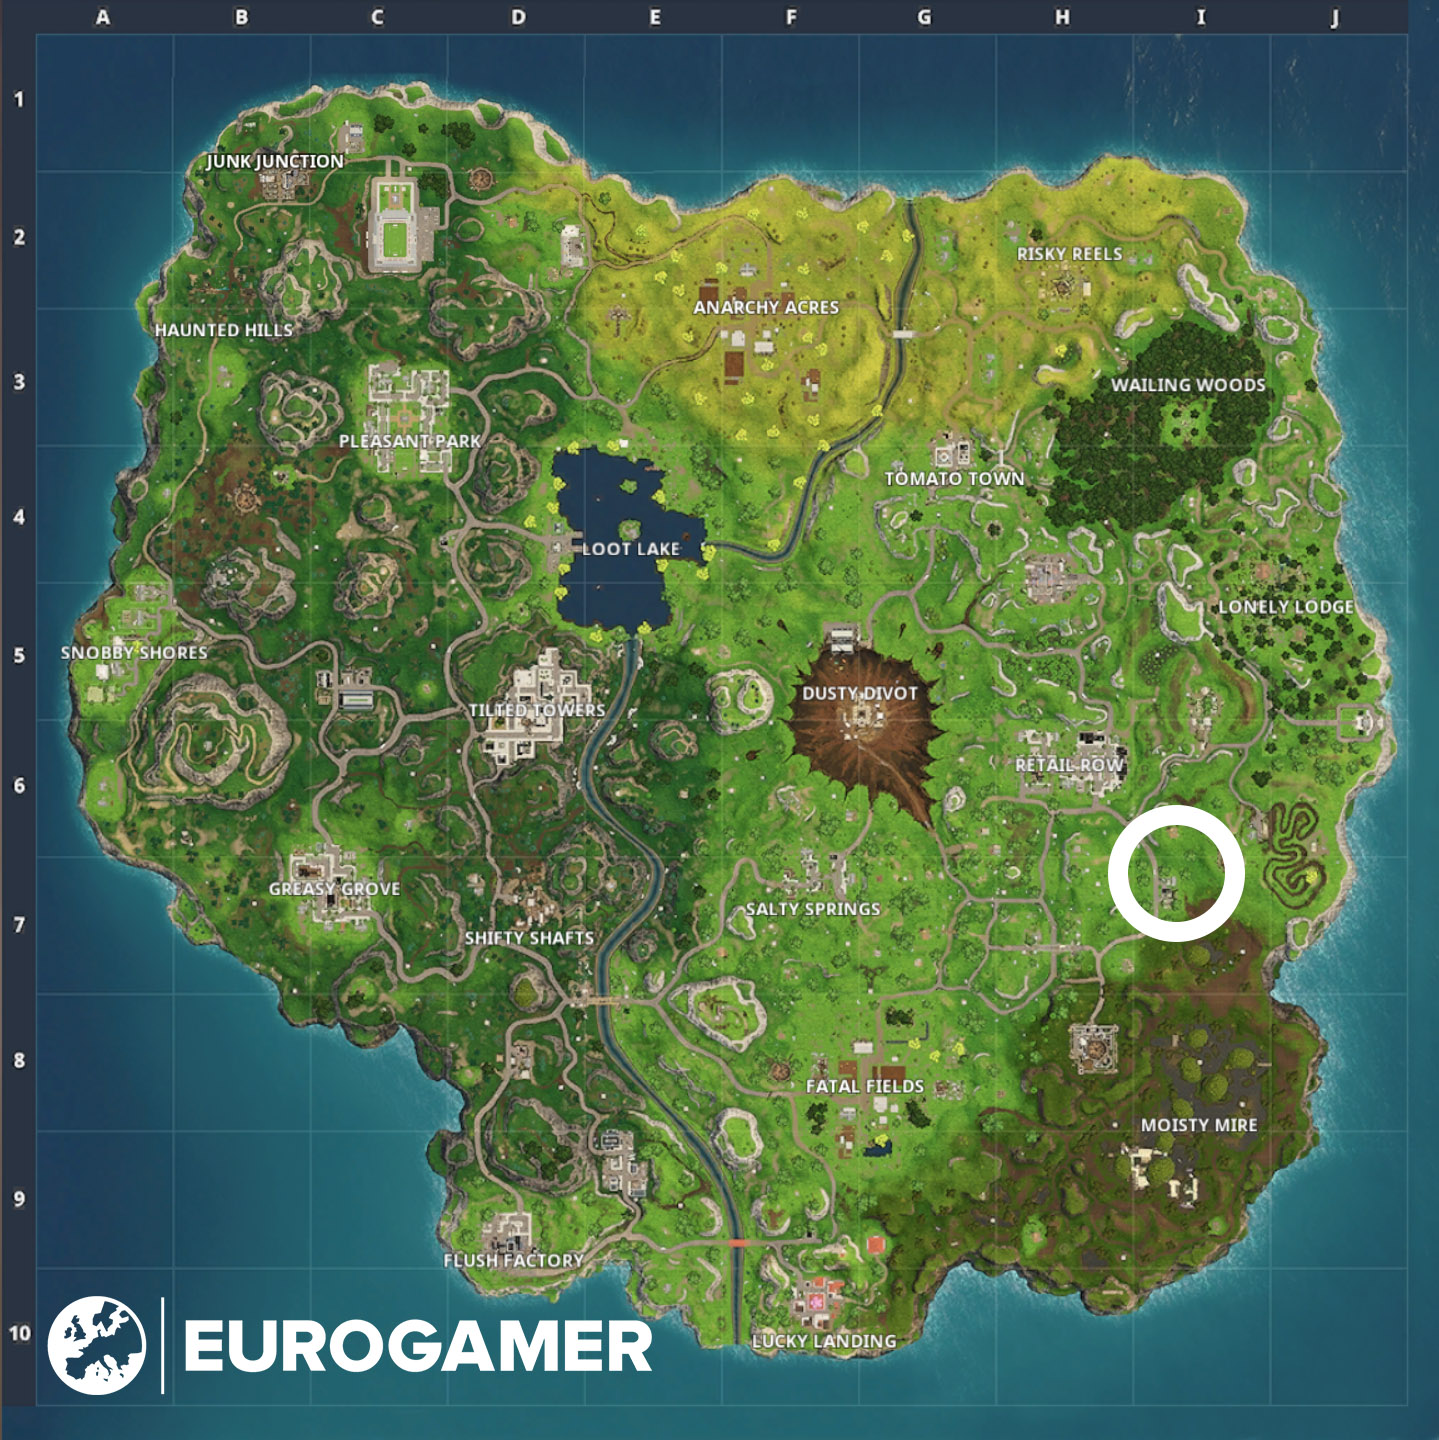 fortnite_bear_crater_refrigerator_shipment_1